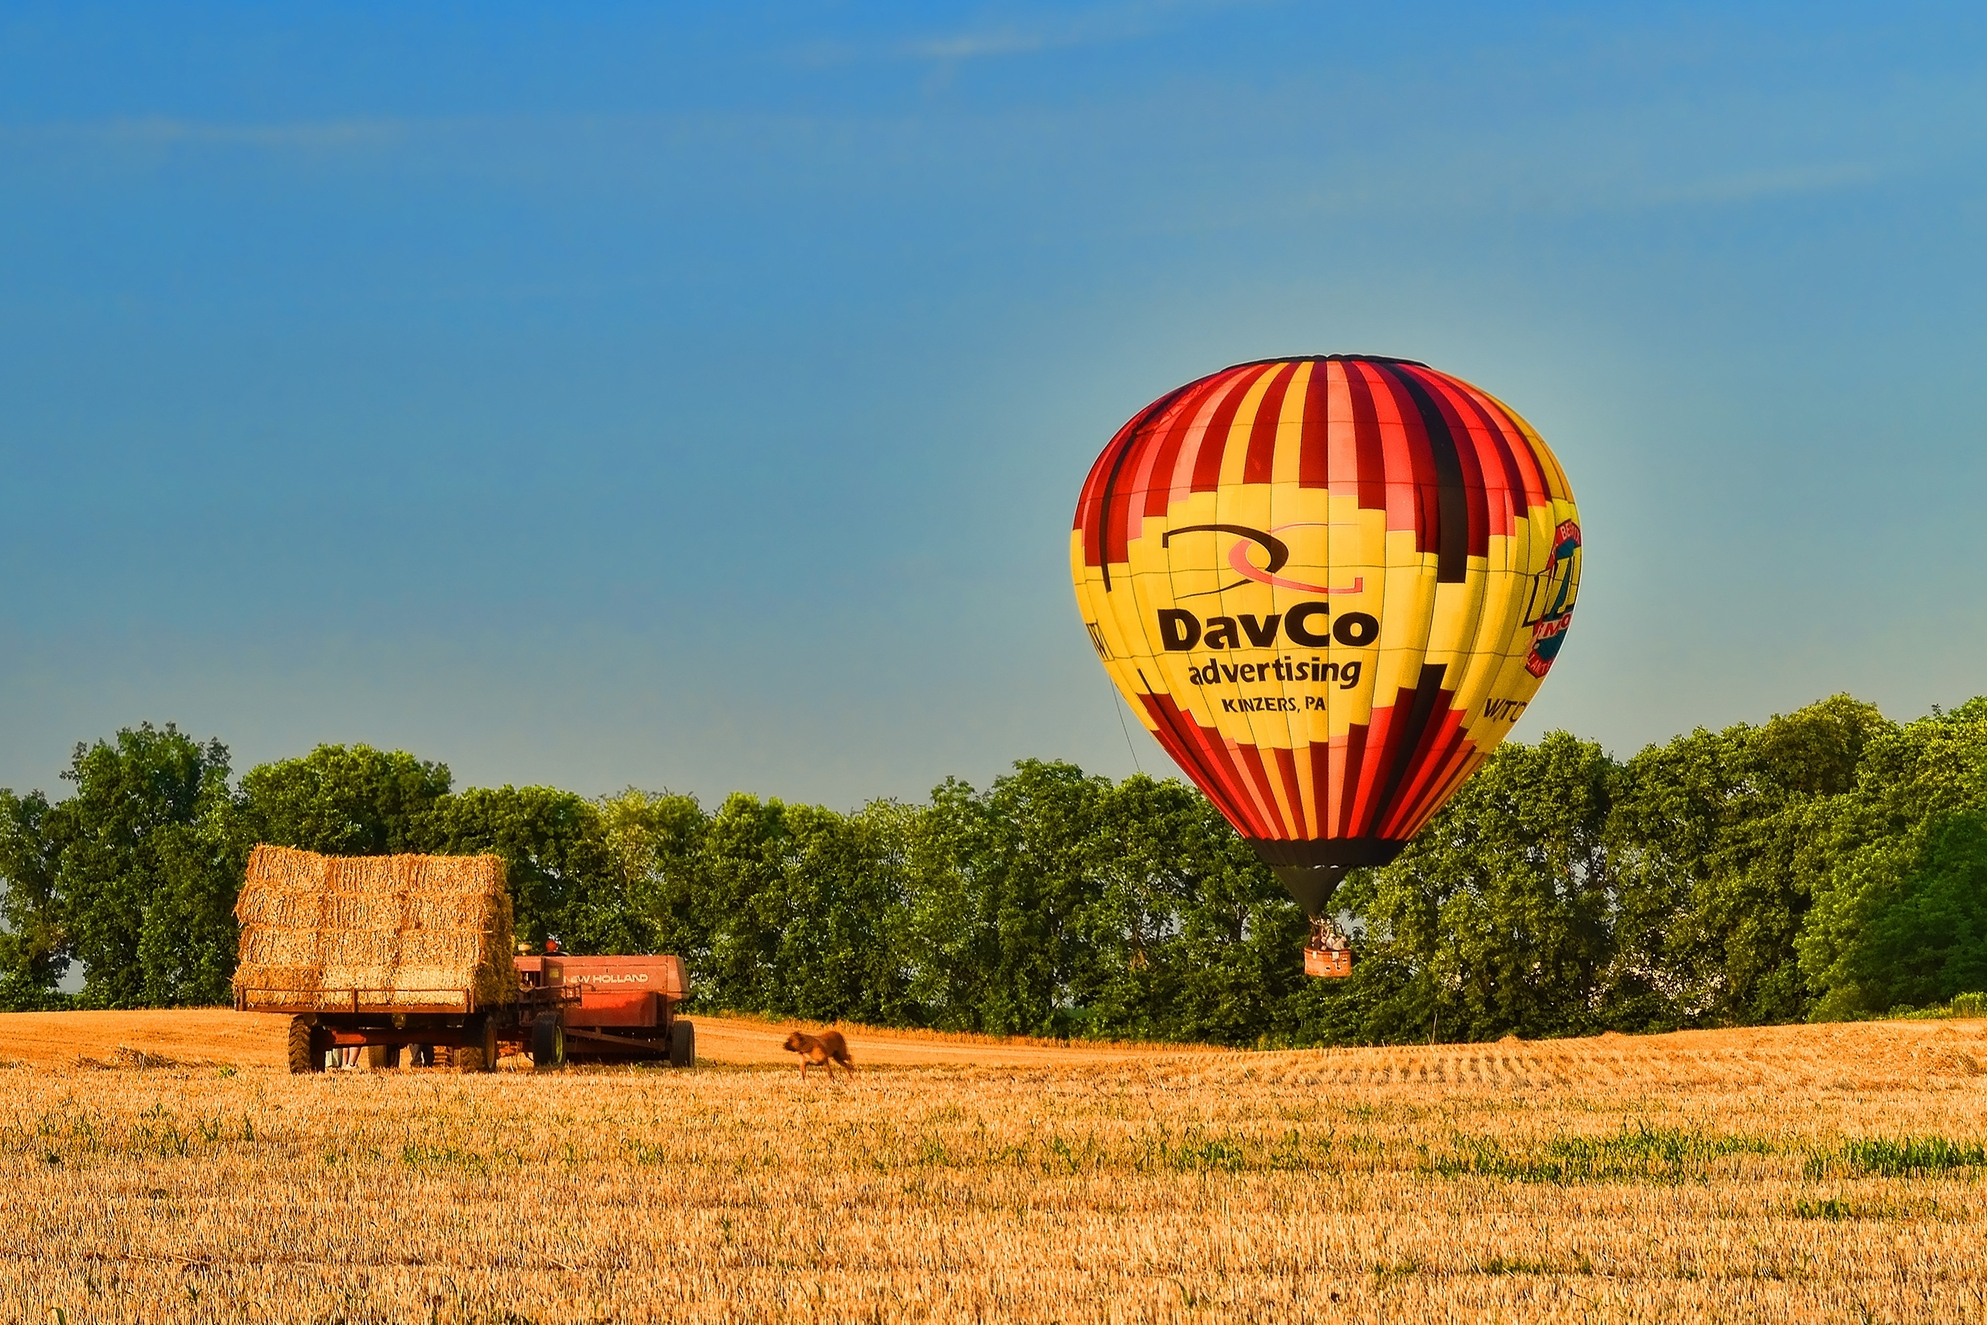 DavCo Balloon in a Hay Field